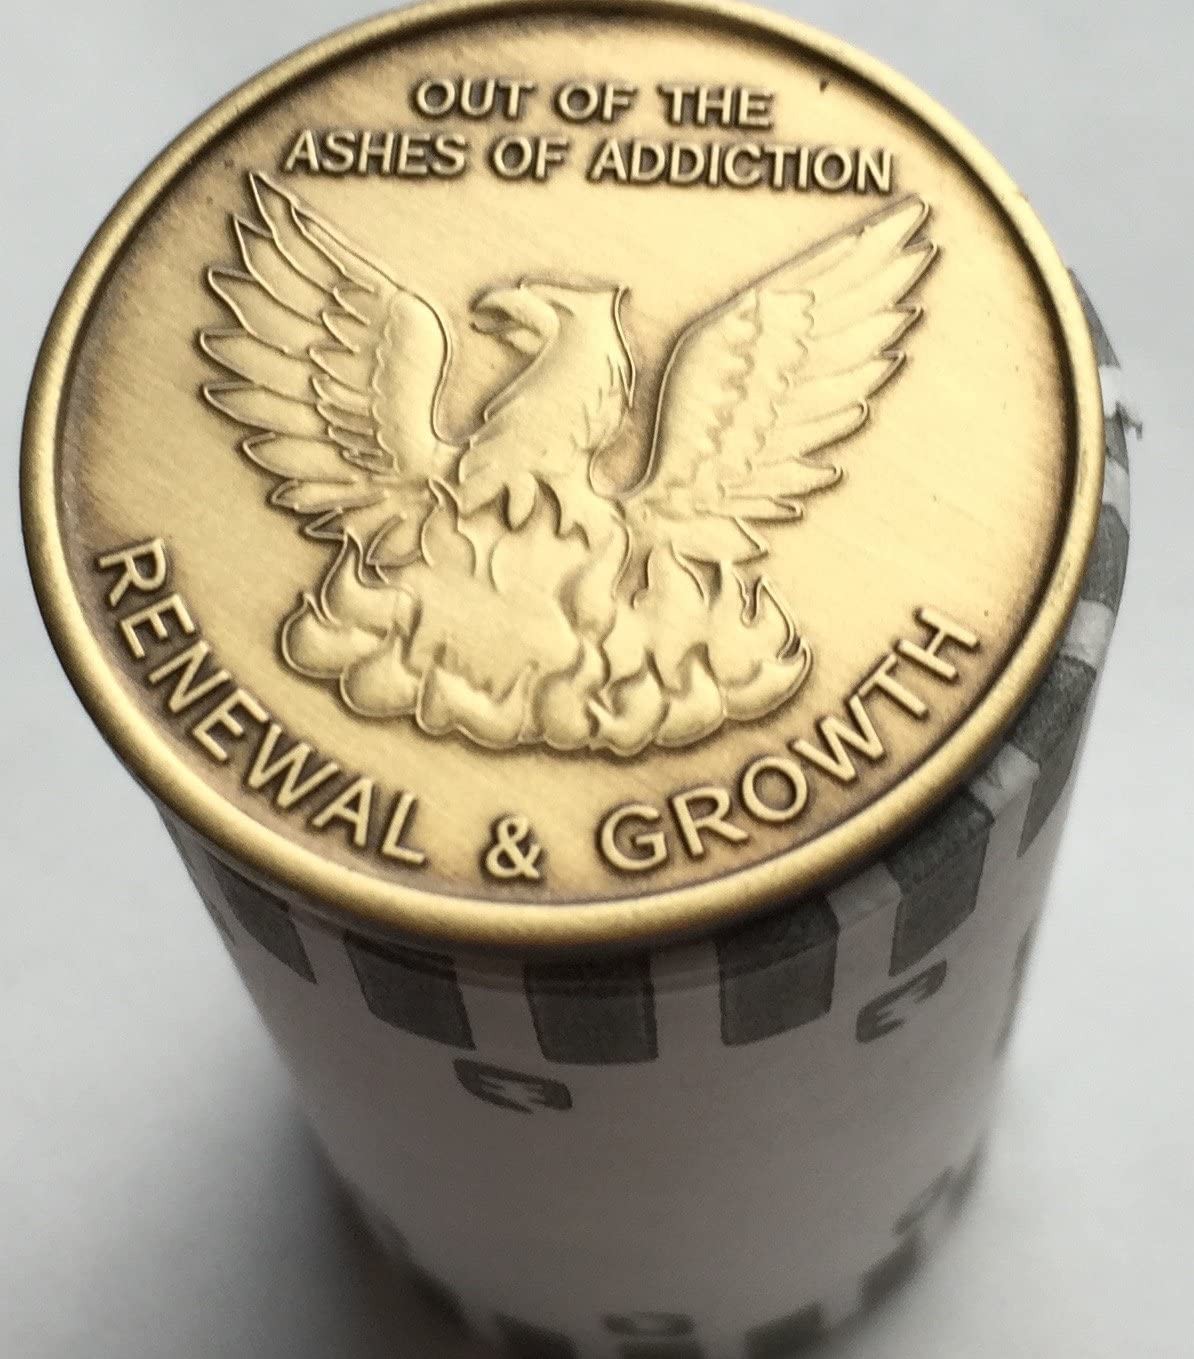 Wendells Bulk Lot of 25 Out Of The Ashes Of Addiction Renewal and Growth Medallions Serenity Prayer Chips